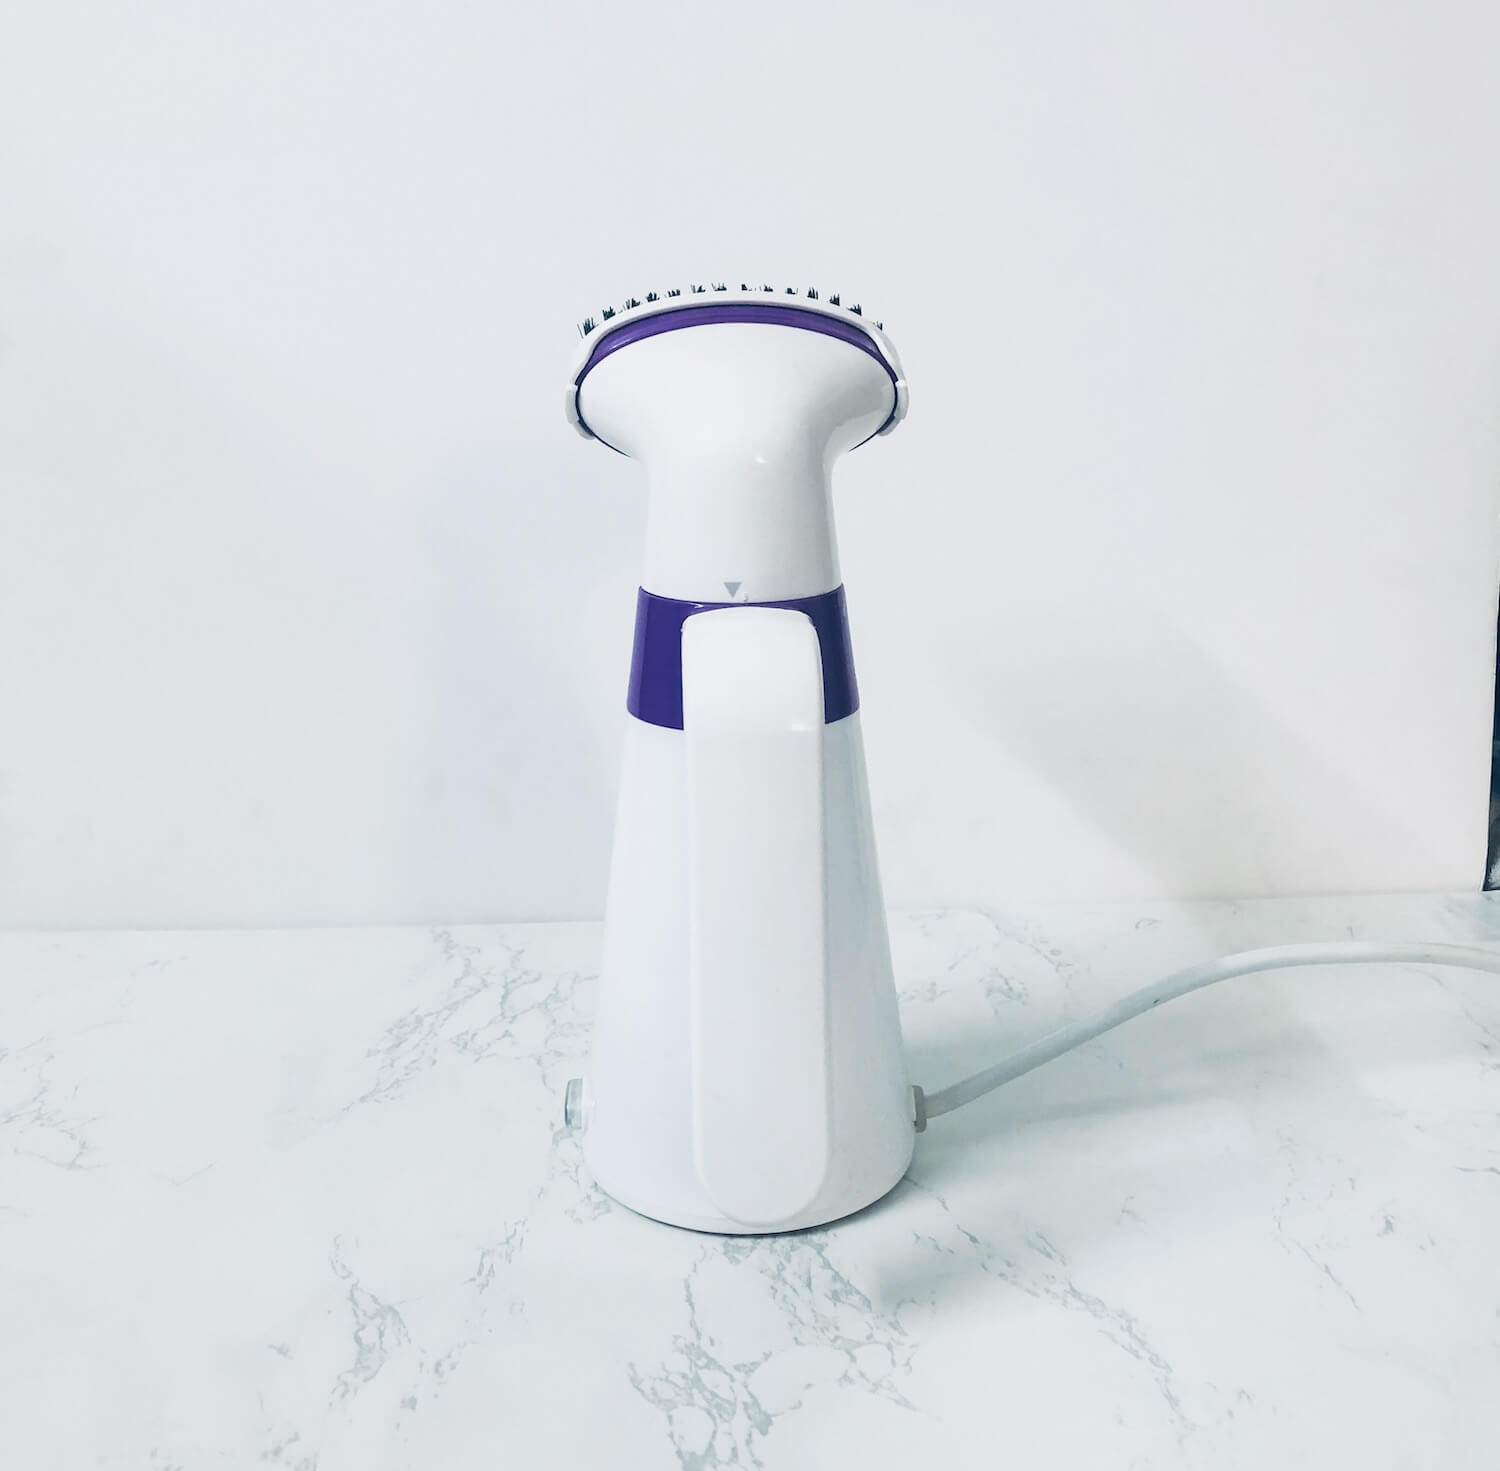 backside view of the inalsa hand steamer